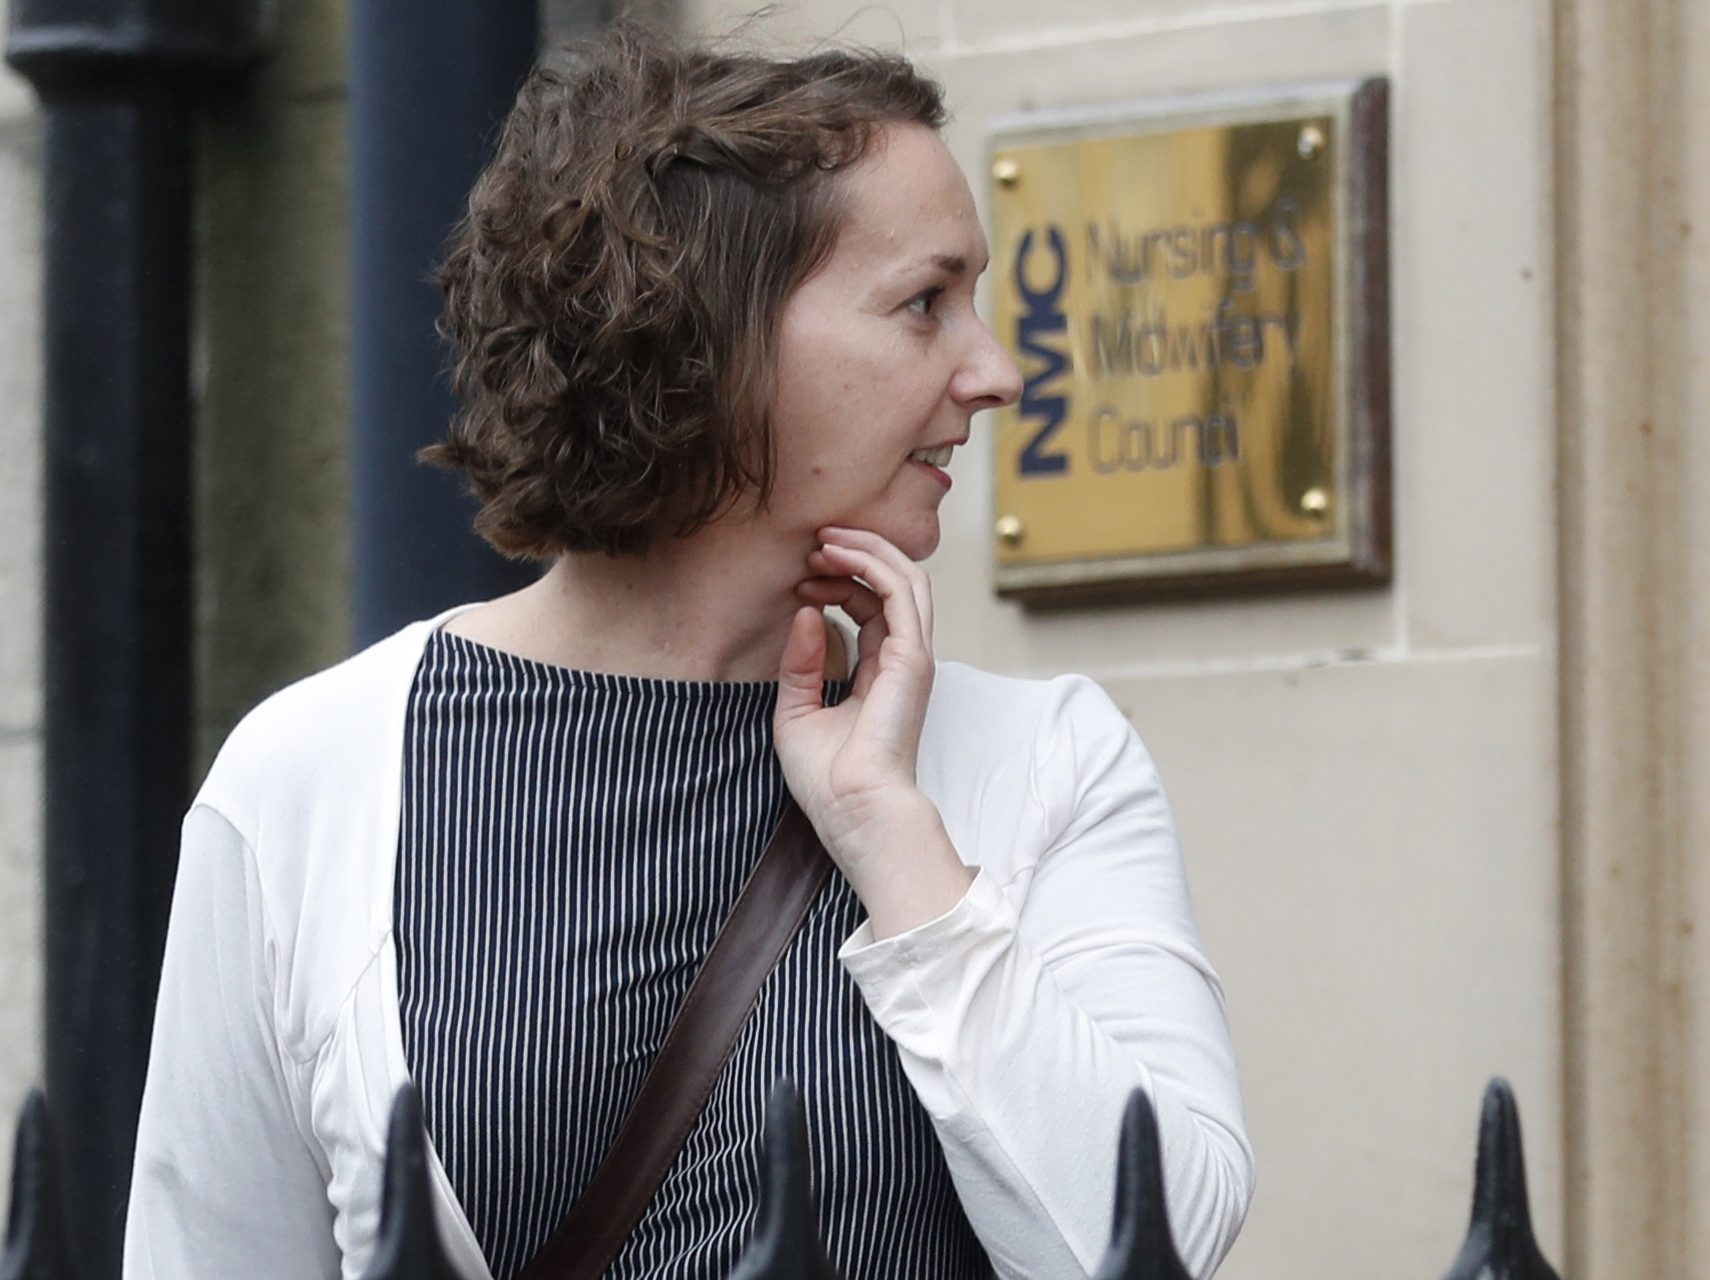 Pauline Cafferkey a nurse who volunteered volunteered to treat Ebola patients in West Africa, then survived the disease herself, leaves a hearing after being cleared of misconduct charges in Edinburgh, Scotland